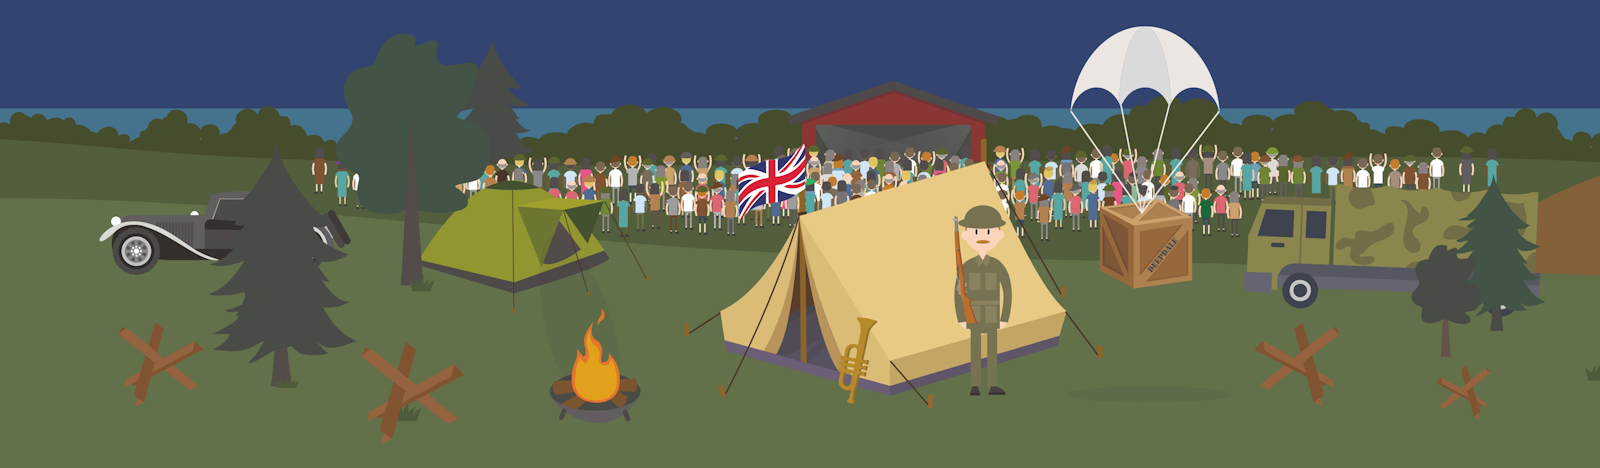 Deepdale 1940s Weekend | 11th to 13th May 2018 | Deepdale's celebration of VE Day with a step back in time to the stylish 1940s